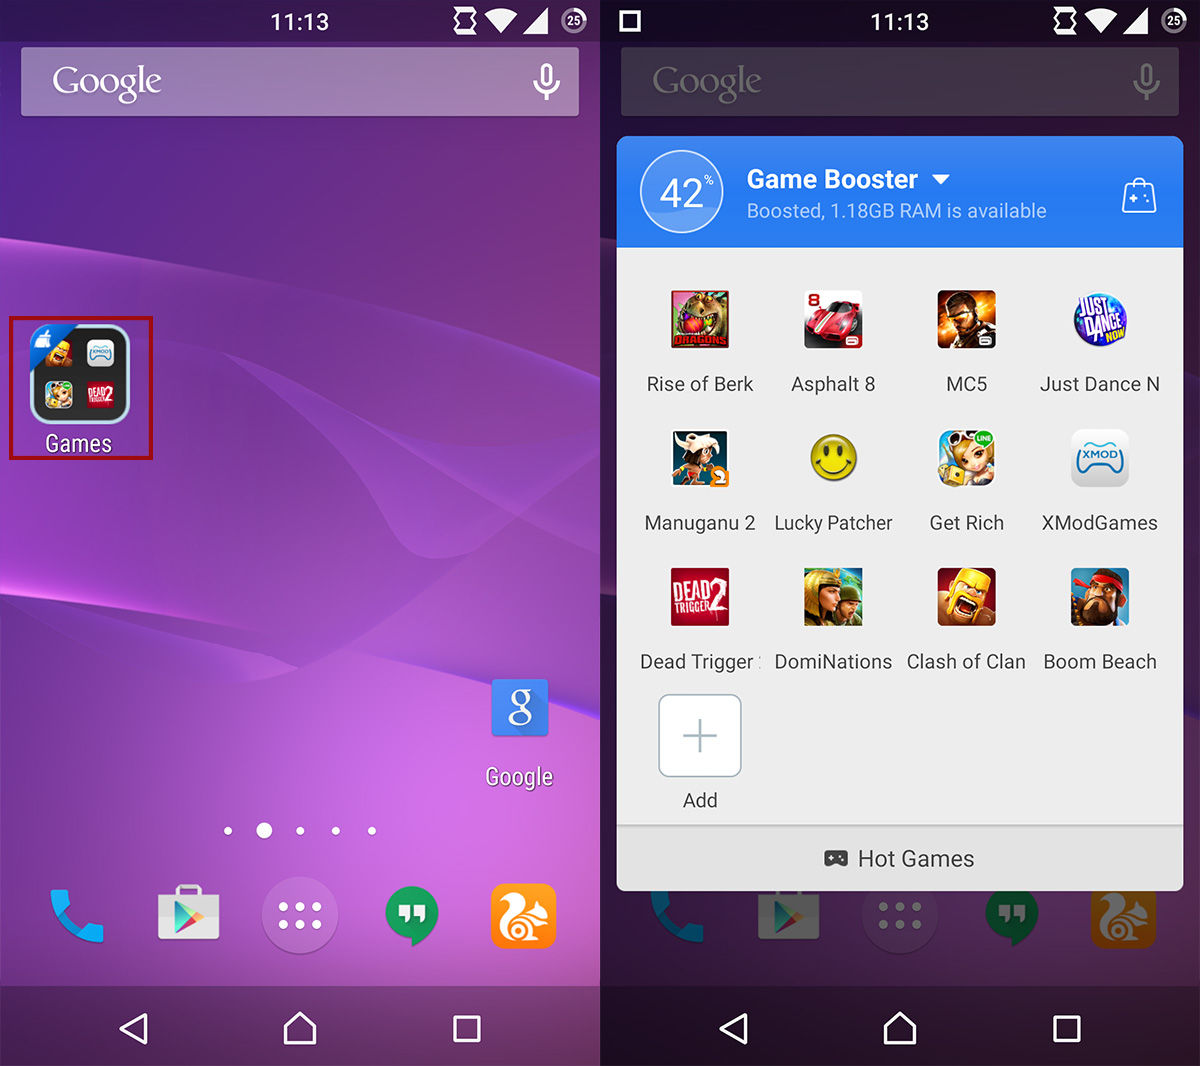 Direct download Android APK, Top charts Apps & Games, Search over , Android Apps & Games, See detail APK information for each Apps & Games, Download 1Mobile .